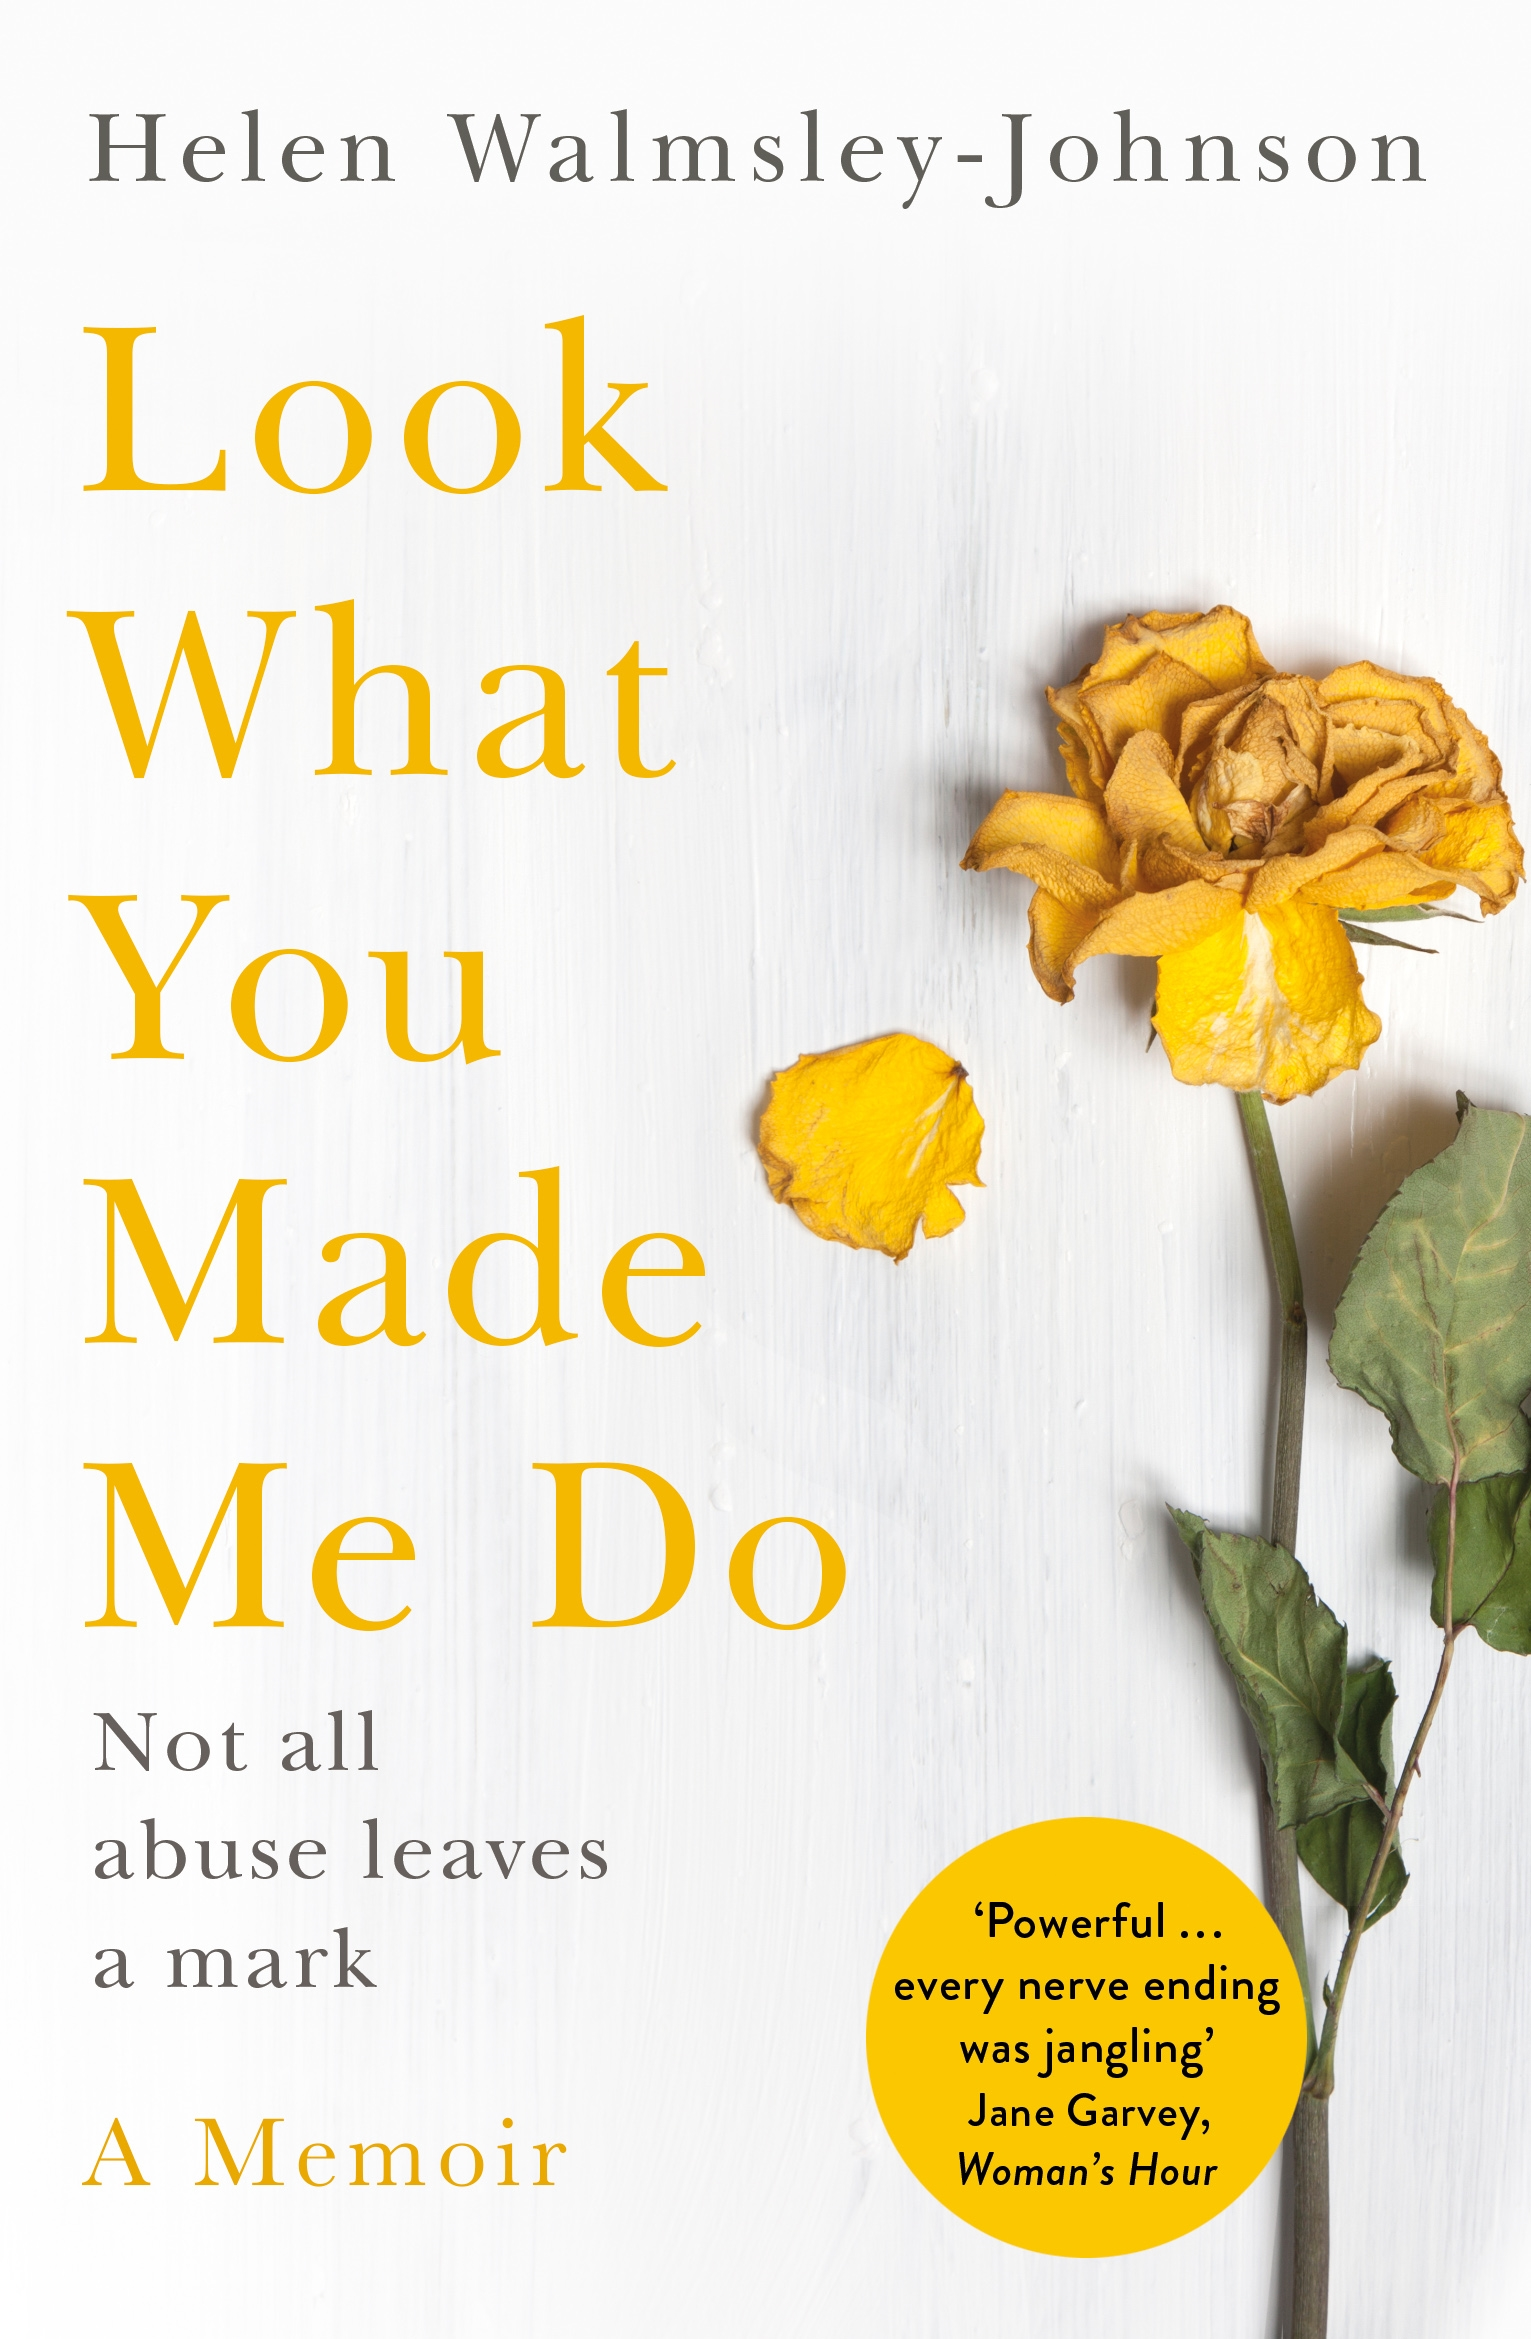 LOOK WHAT YOU MADE ME DO  Memoir, 336 pages Macmillan, March 2018  Helen's first husband controlled her life, from the people she saw to what was in her bank account. He alienated her from friends and family and even from their three daughters. Eventually, he threw her out and she painfully began to rebuild her life.  Then, divorced and in her early forties, she met Franc. Kind, charming, considerate Franc. For ten years she would be in his thrall, even when he too was telling her what to wear, what to eat, even what to think.   Look What You Made Me Do  is her candid and utterly gripping memoir of how she was trapped by a smiling abuser, not once but twice. It is a vital guide to recognizing, understanding and surviving this sinister form of abuse and its often terrible legacy. It is also an inspirational account of how one woman found the courage to walk away.